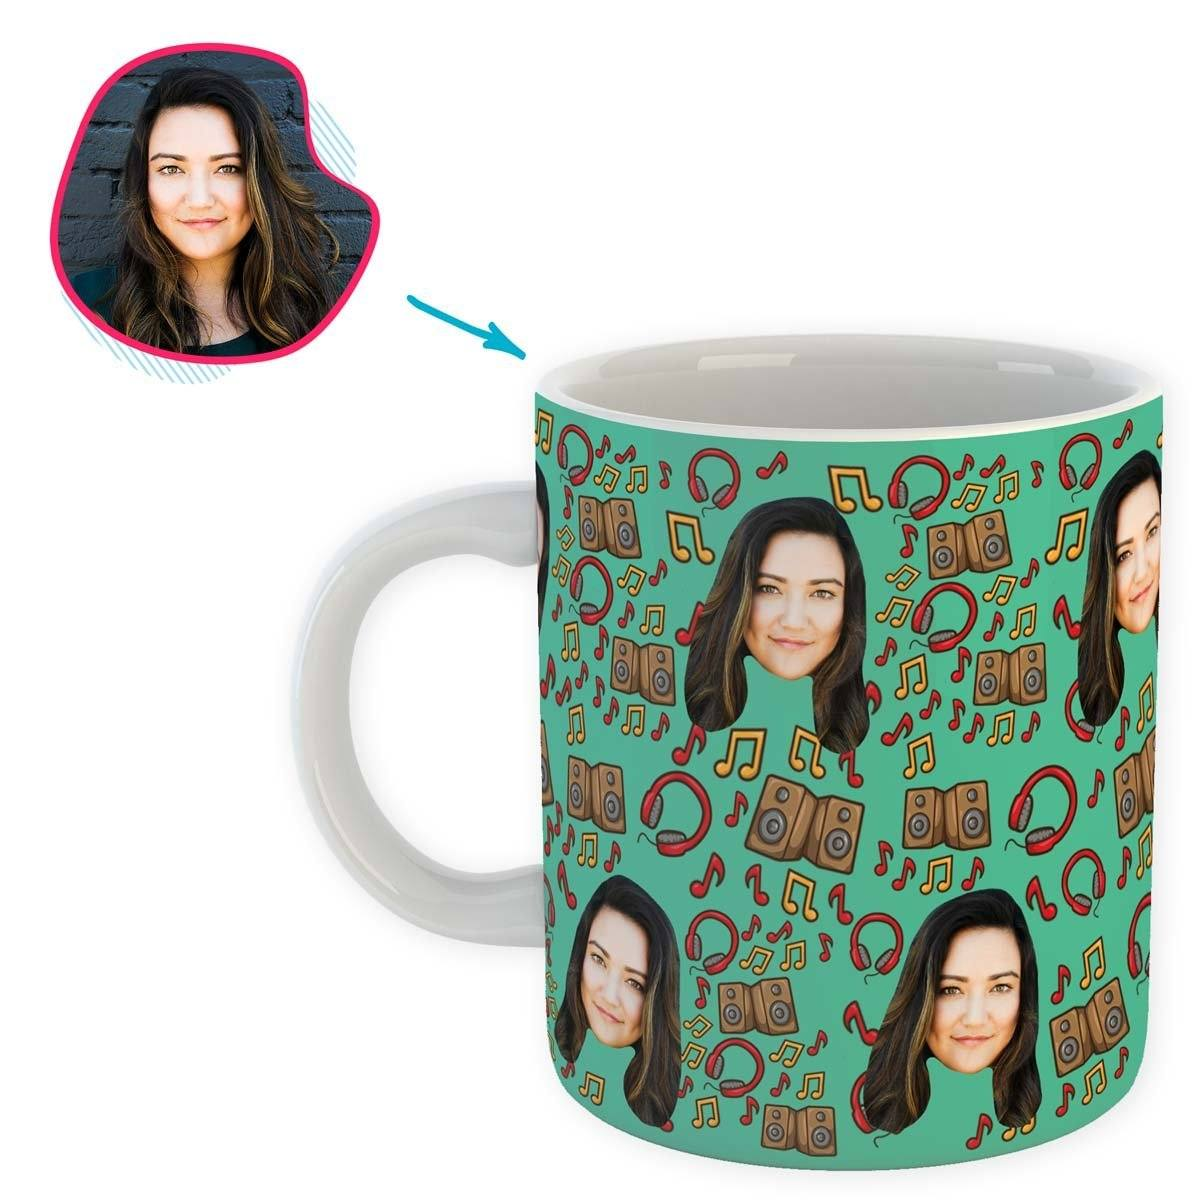 mint Music mug personalized with photo of face printed on it